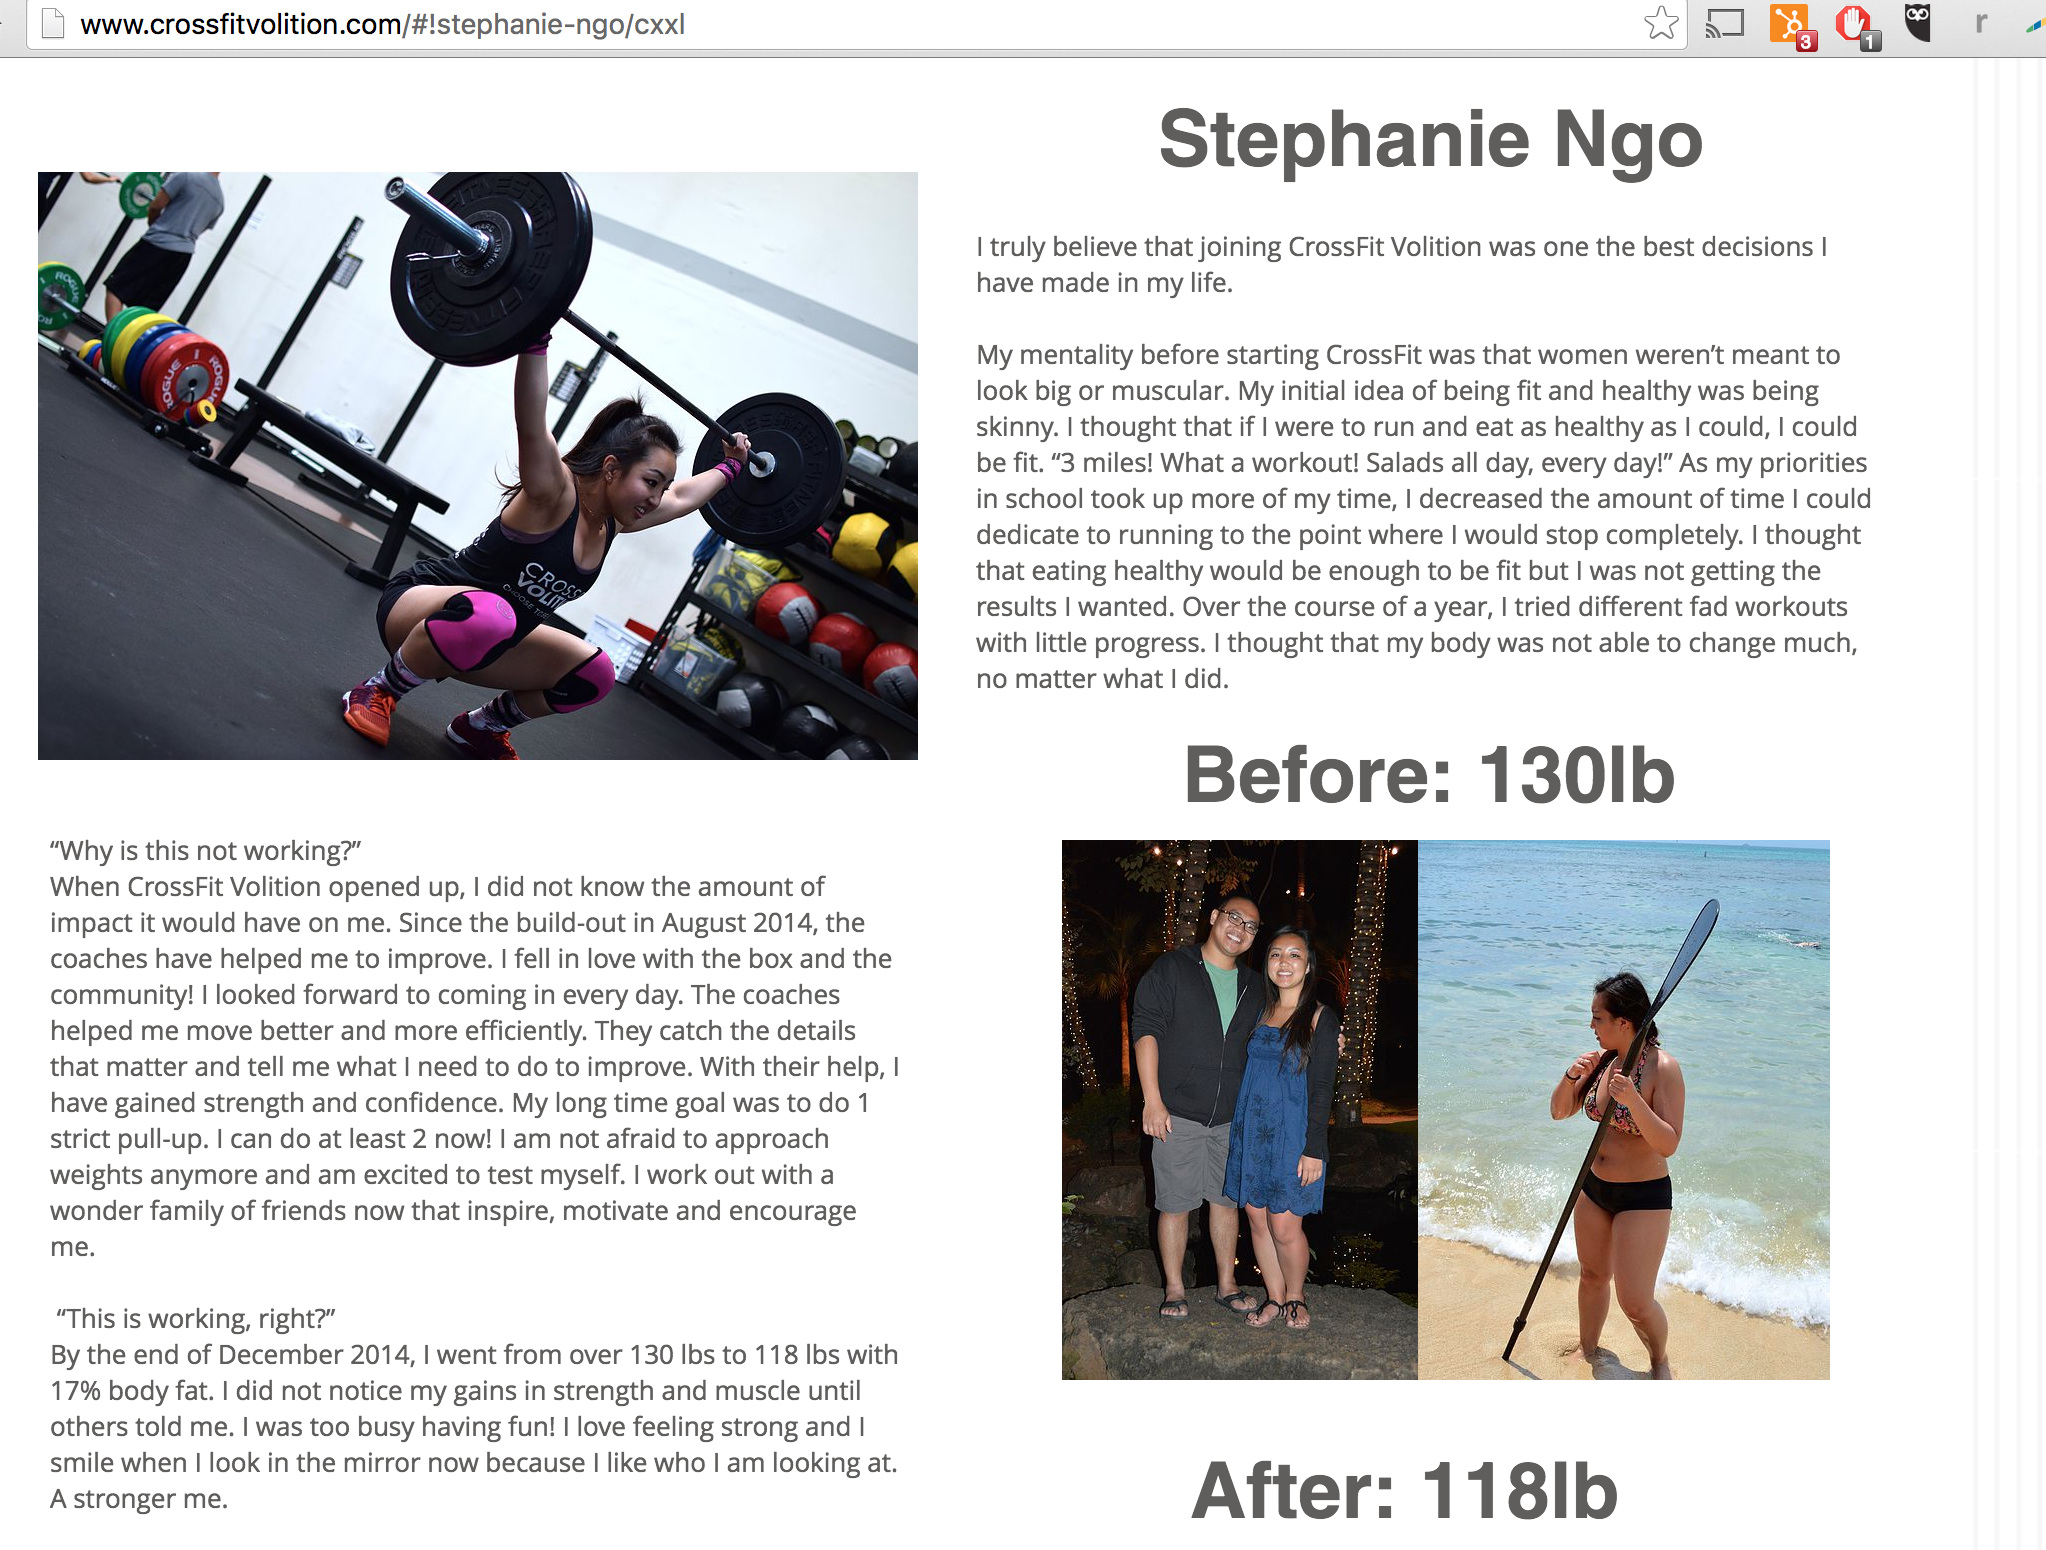 A sample page of the CrossFit Volition Transformation Page I previously made.